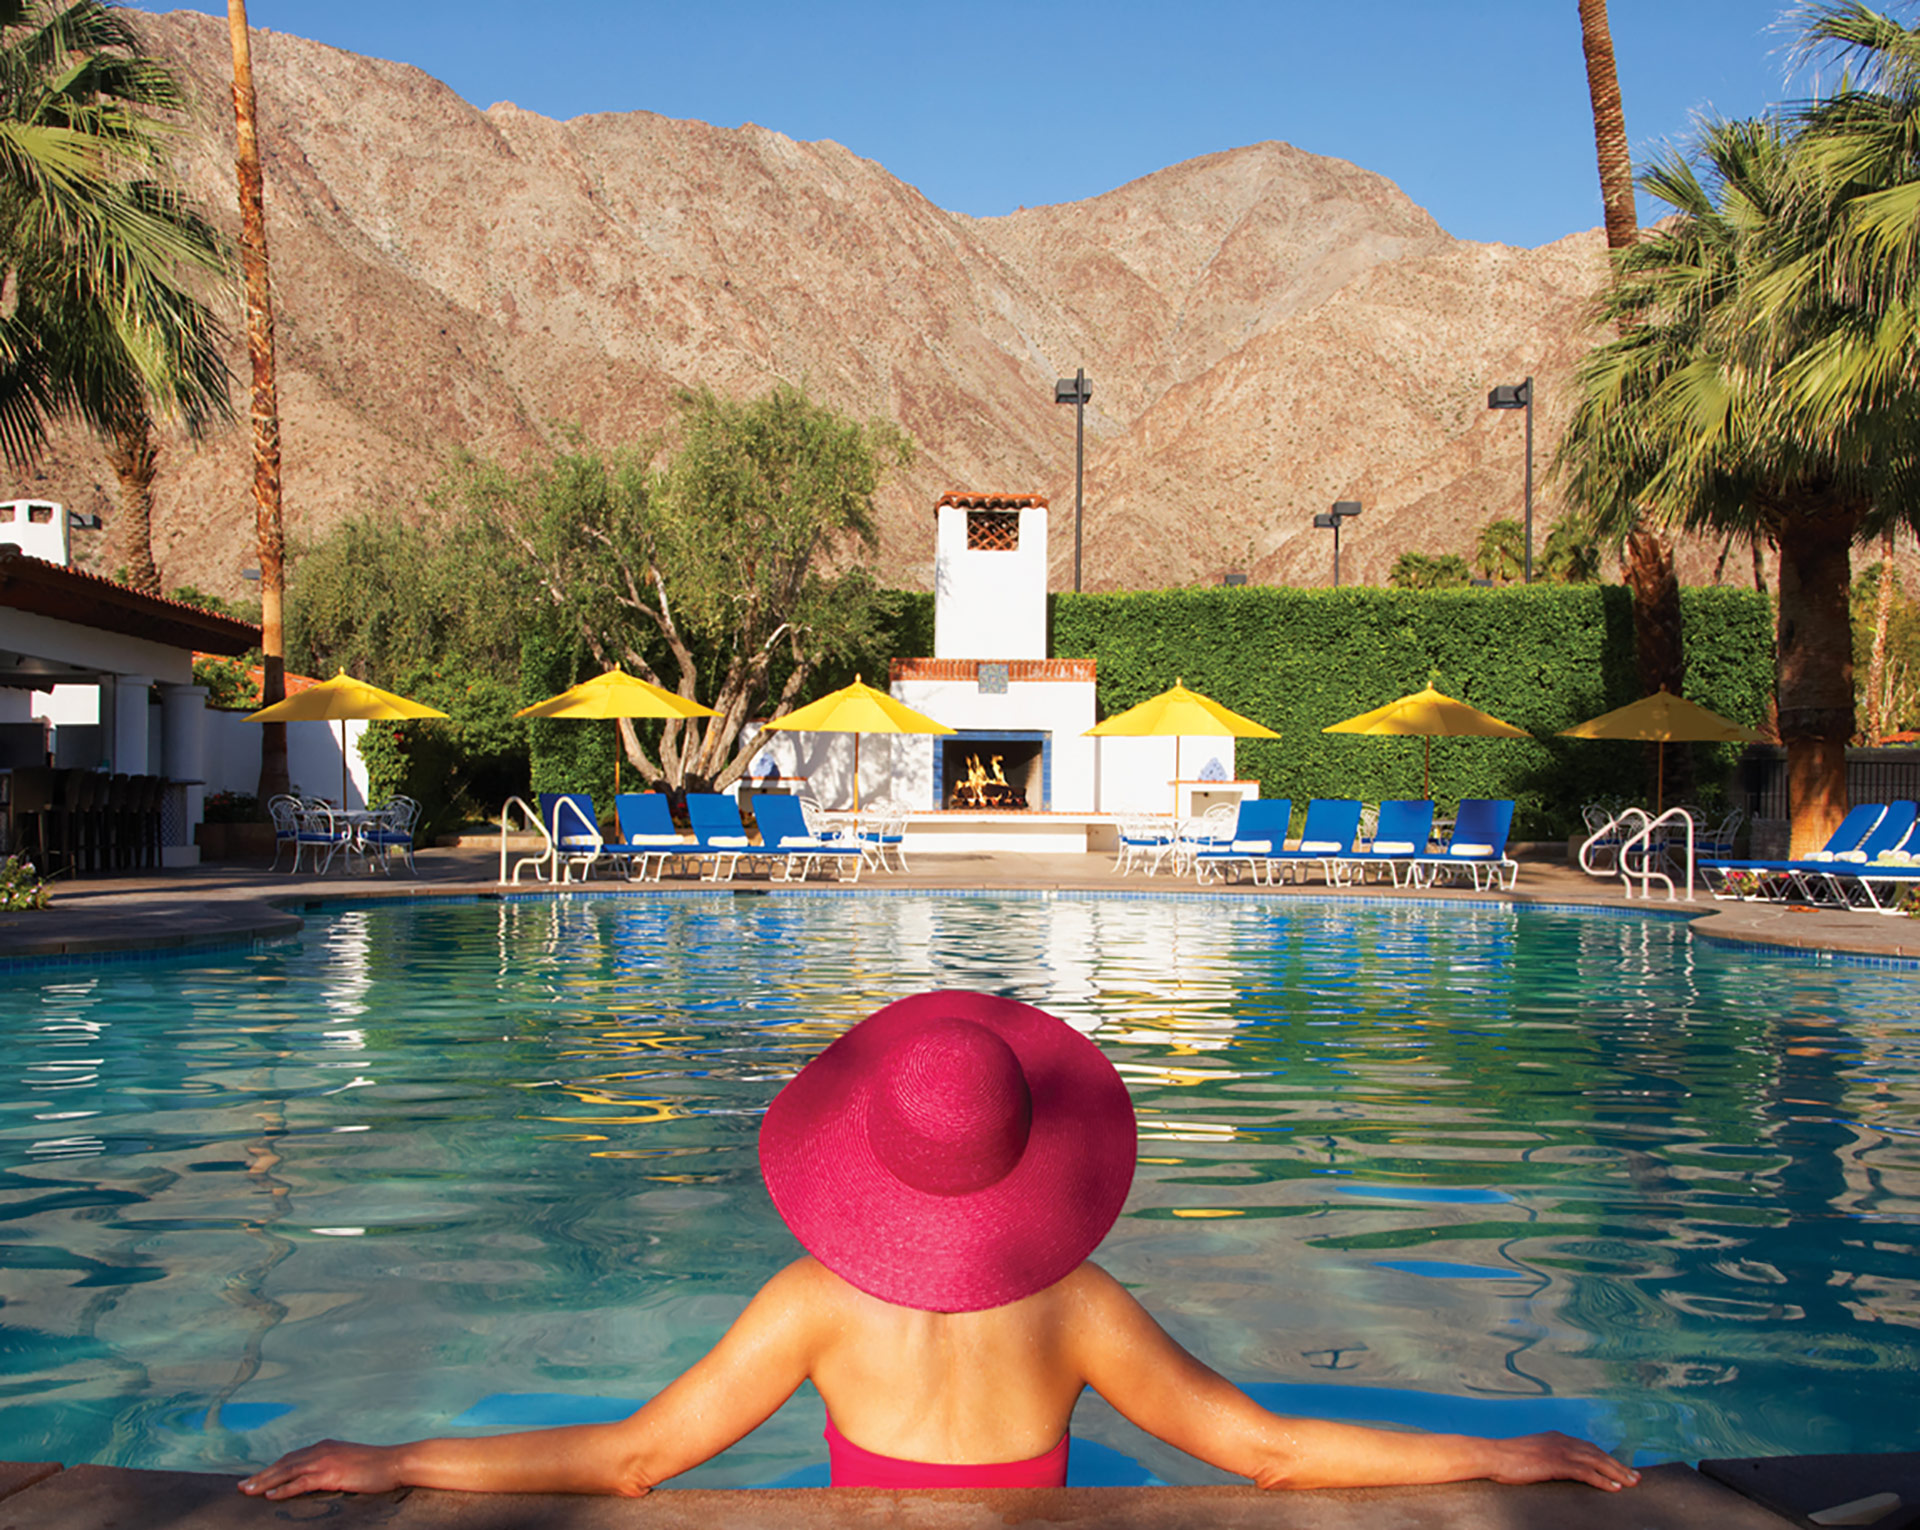 Greater palm springs hotels and resorts places to stay